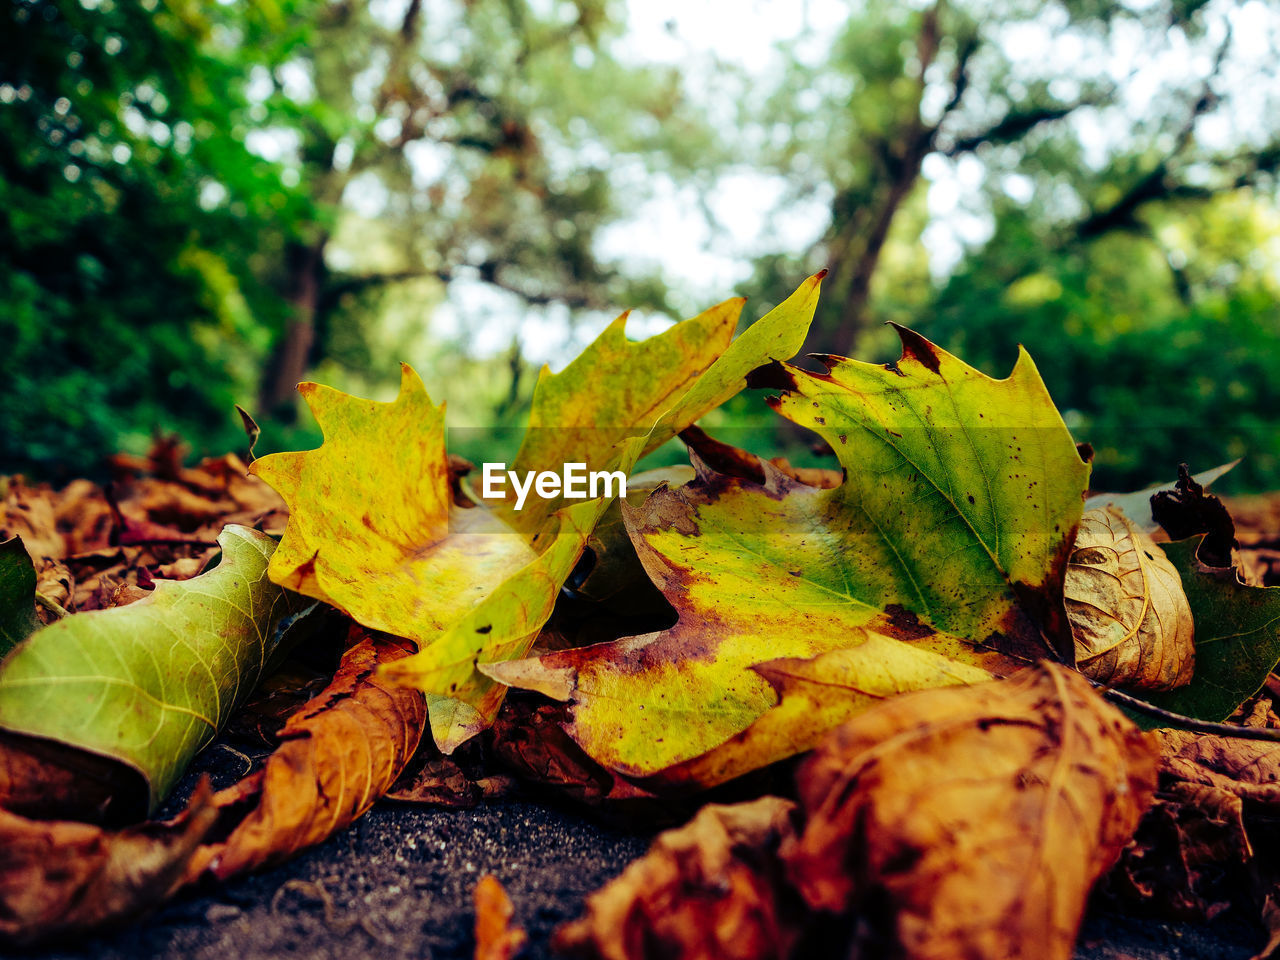 leaf, autumn, change, nature, dry, leaves, outdoors, day, no people, close-up, tree, tranquility, beauty in nature, maple leaf, focus on foreground, growth, fragility, maple